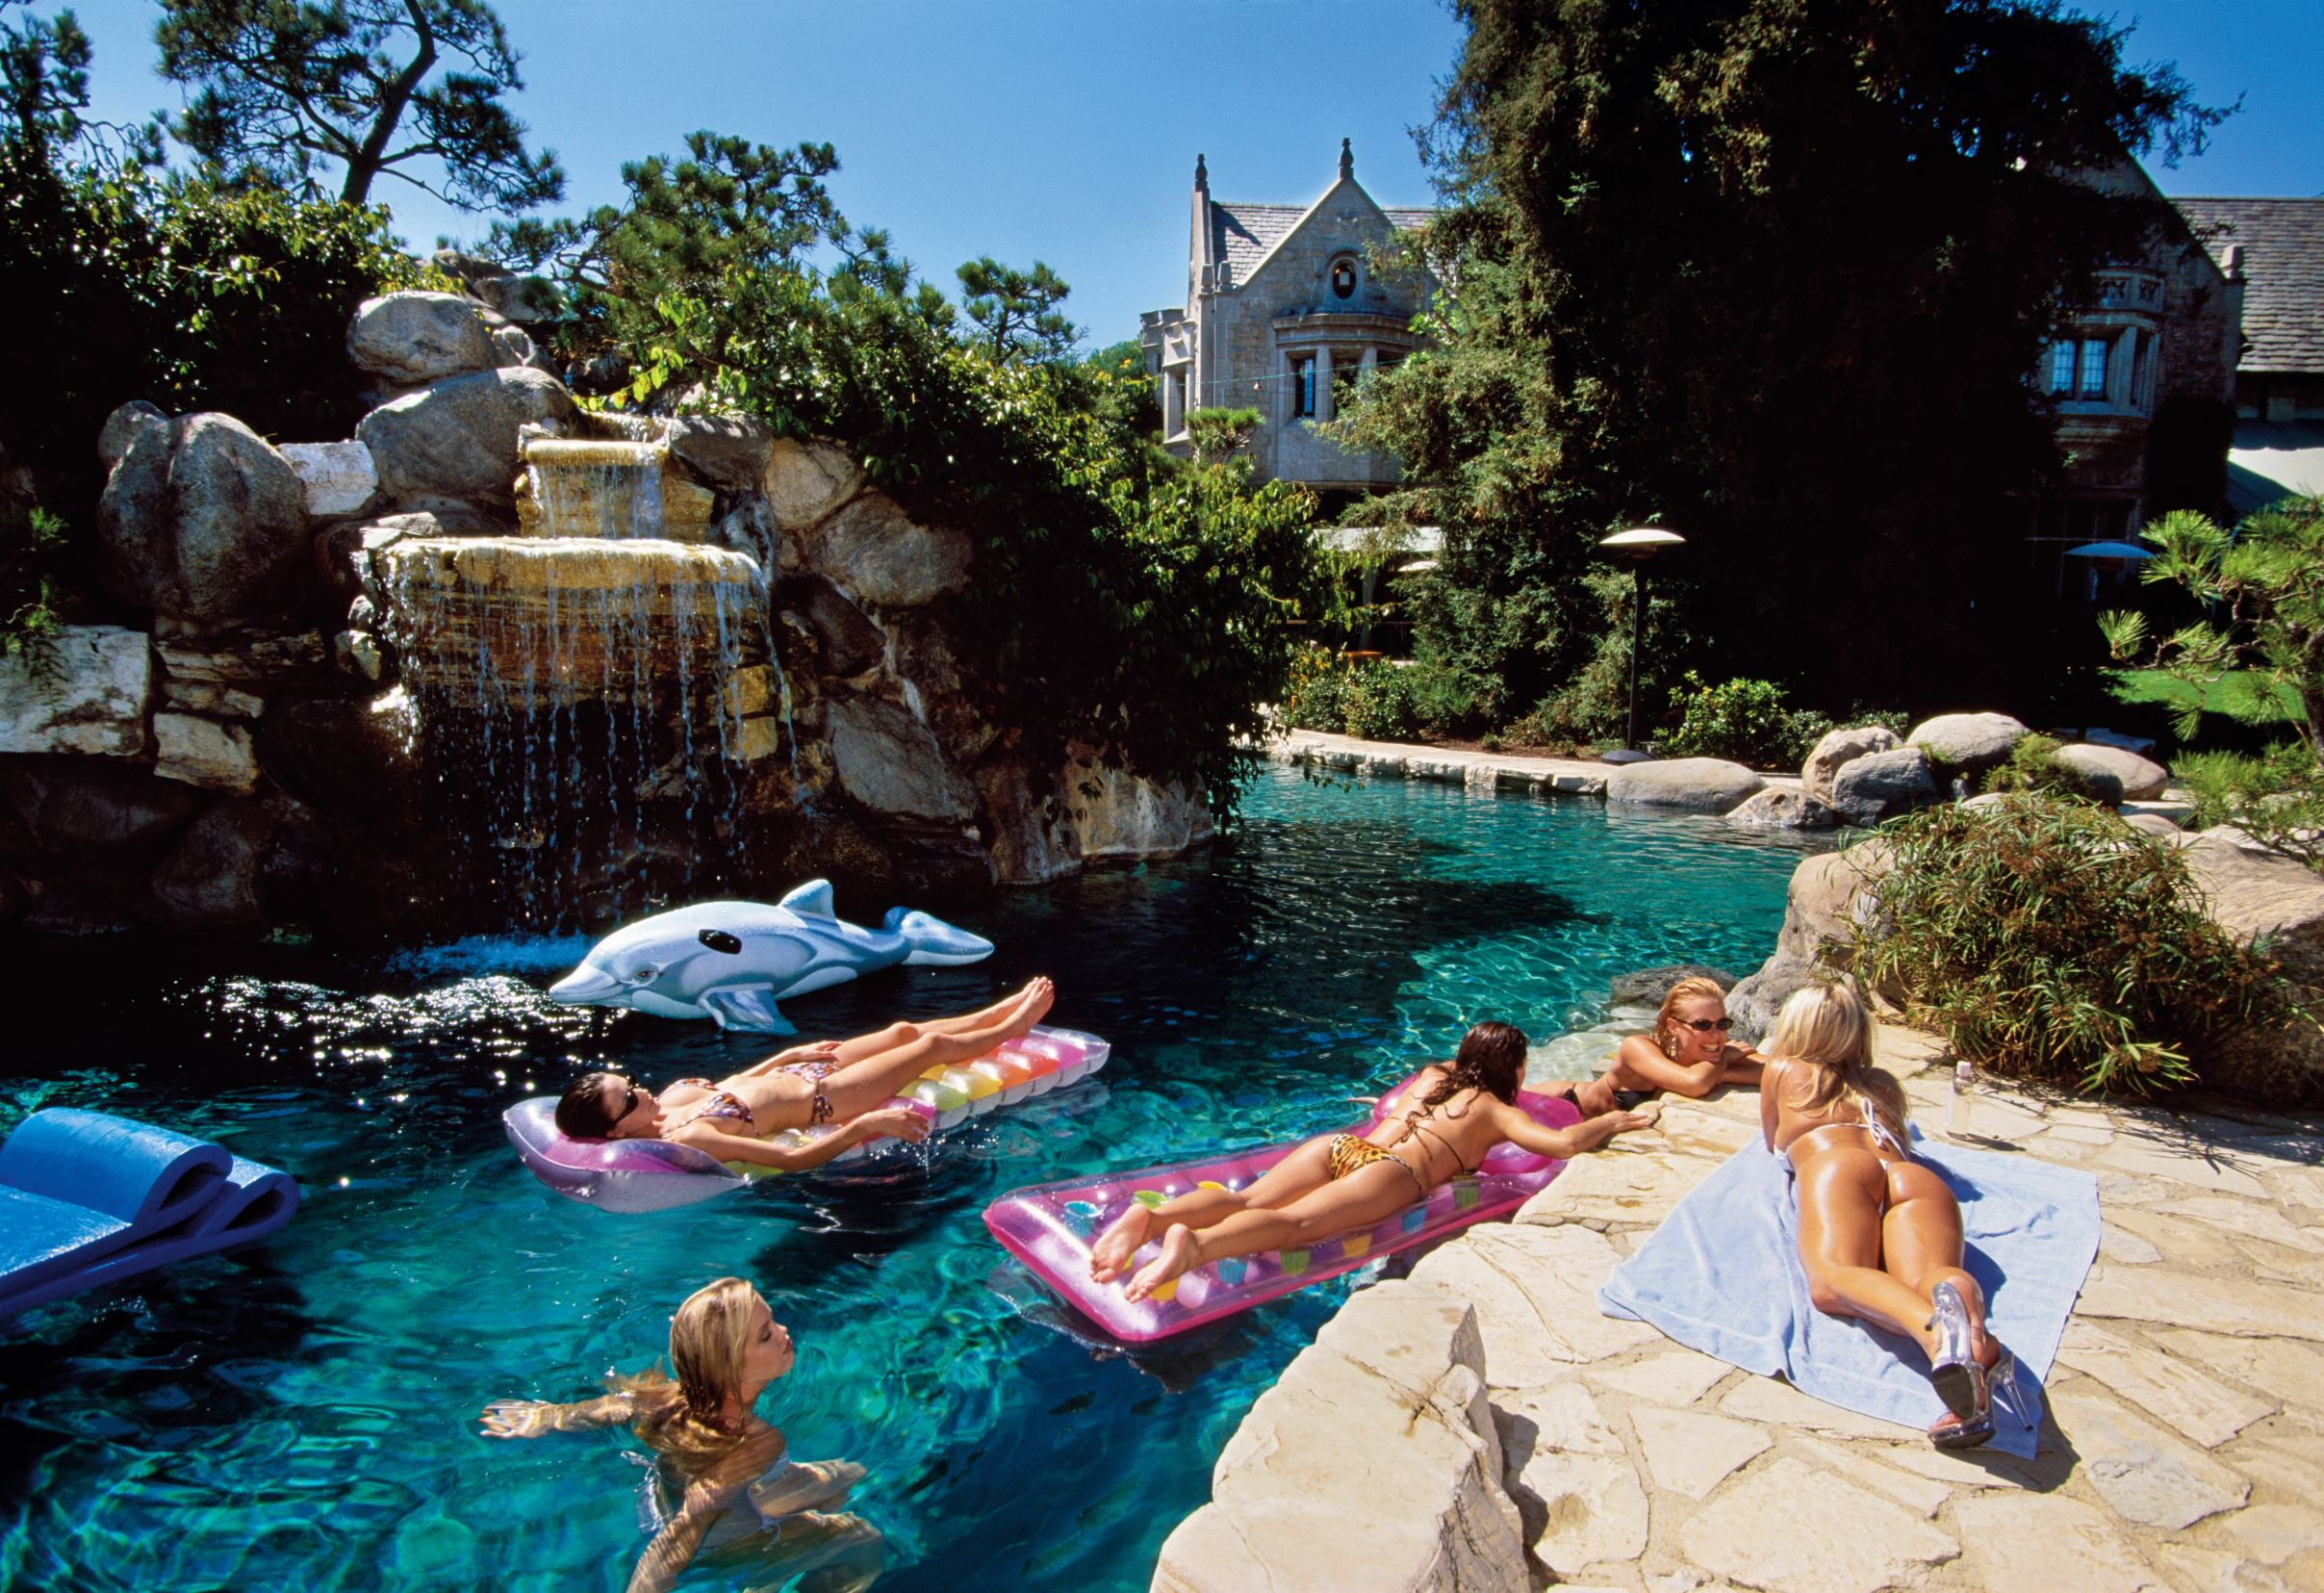 Playmates at the Playboy Mansion's grotto, Holmby Hills, Los Angeles, 2000, by Lauren Greenfield